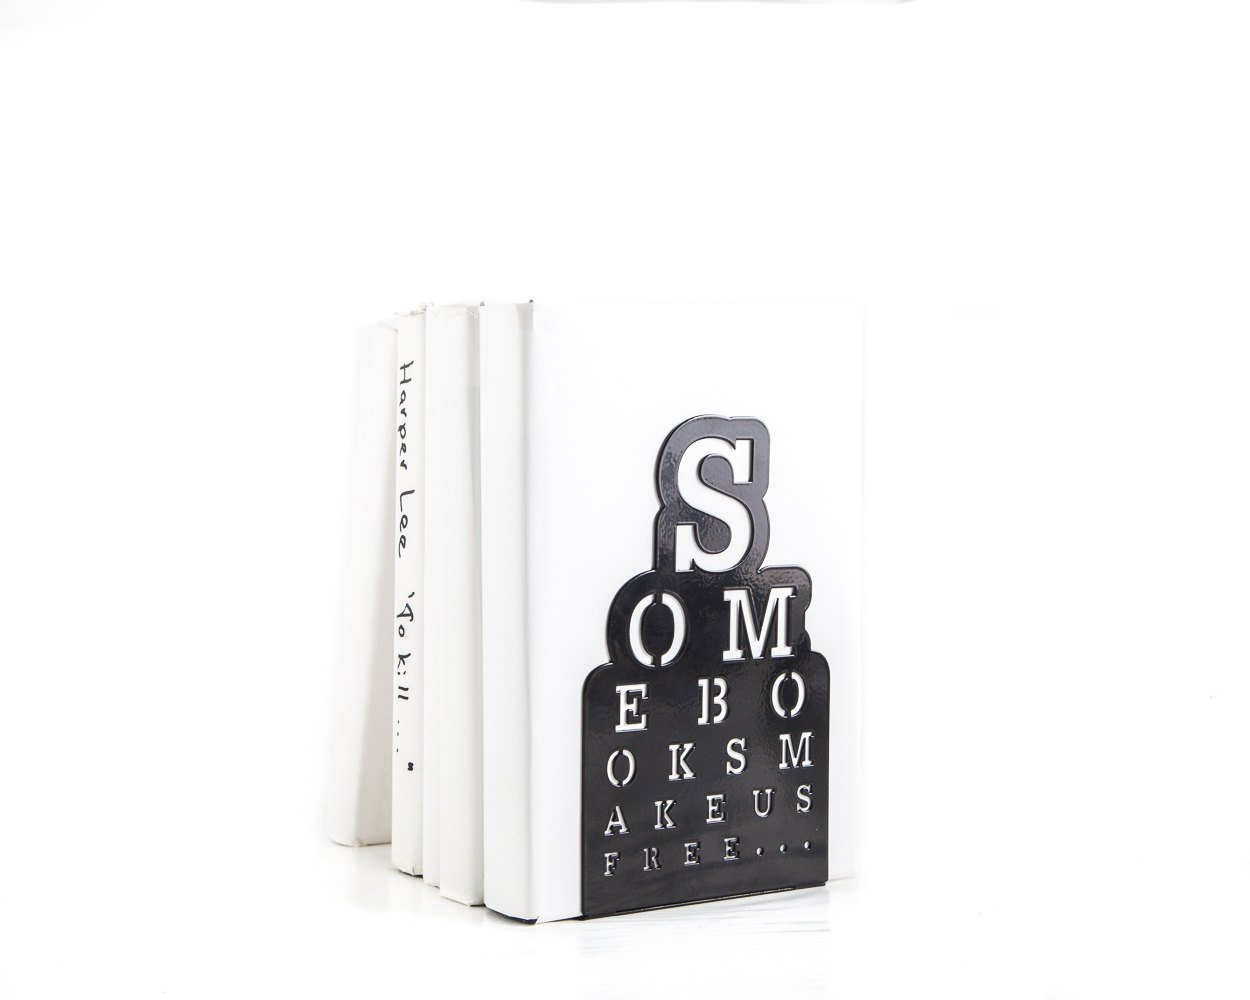 One metal bookend // Eyesight chart // Some books make us free // free shipping - Design Atelier Article